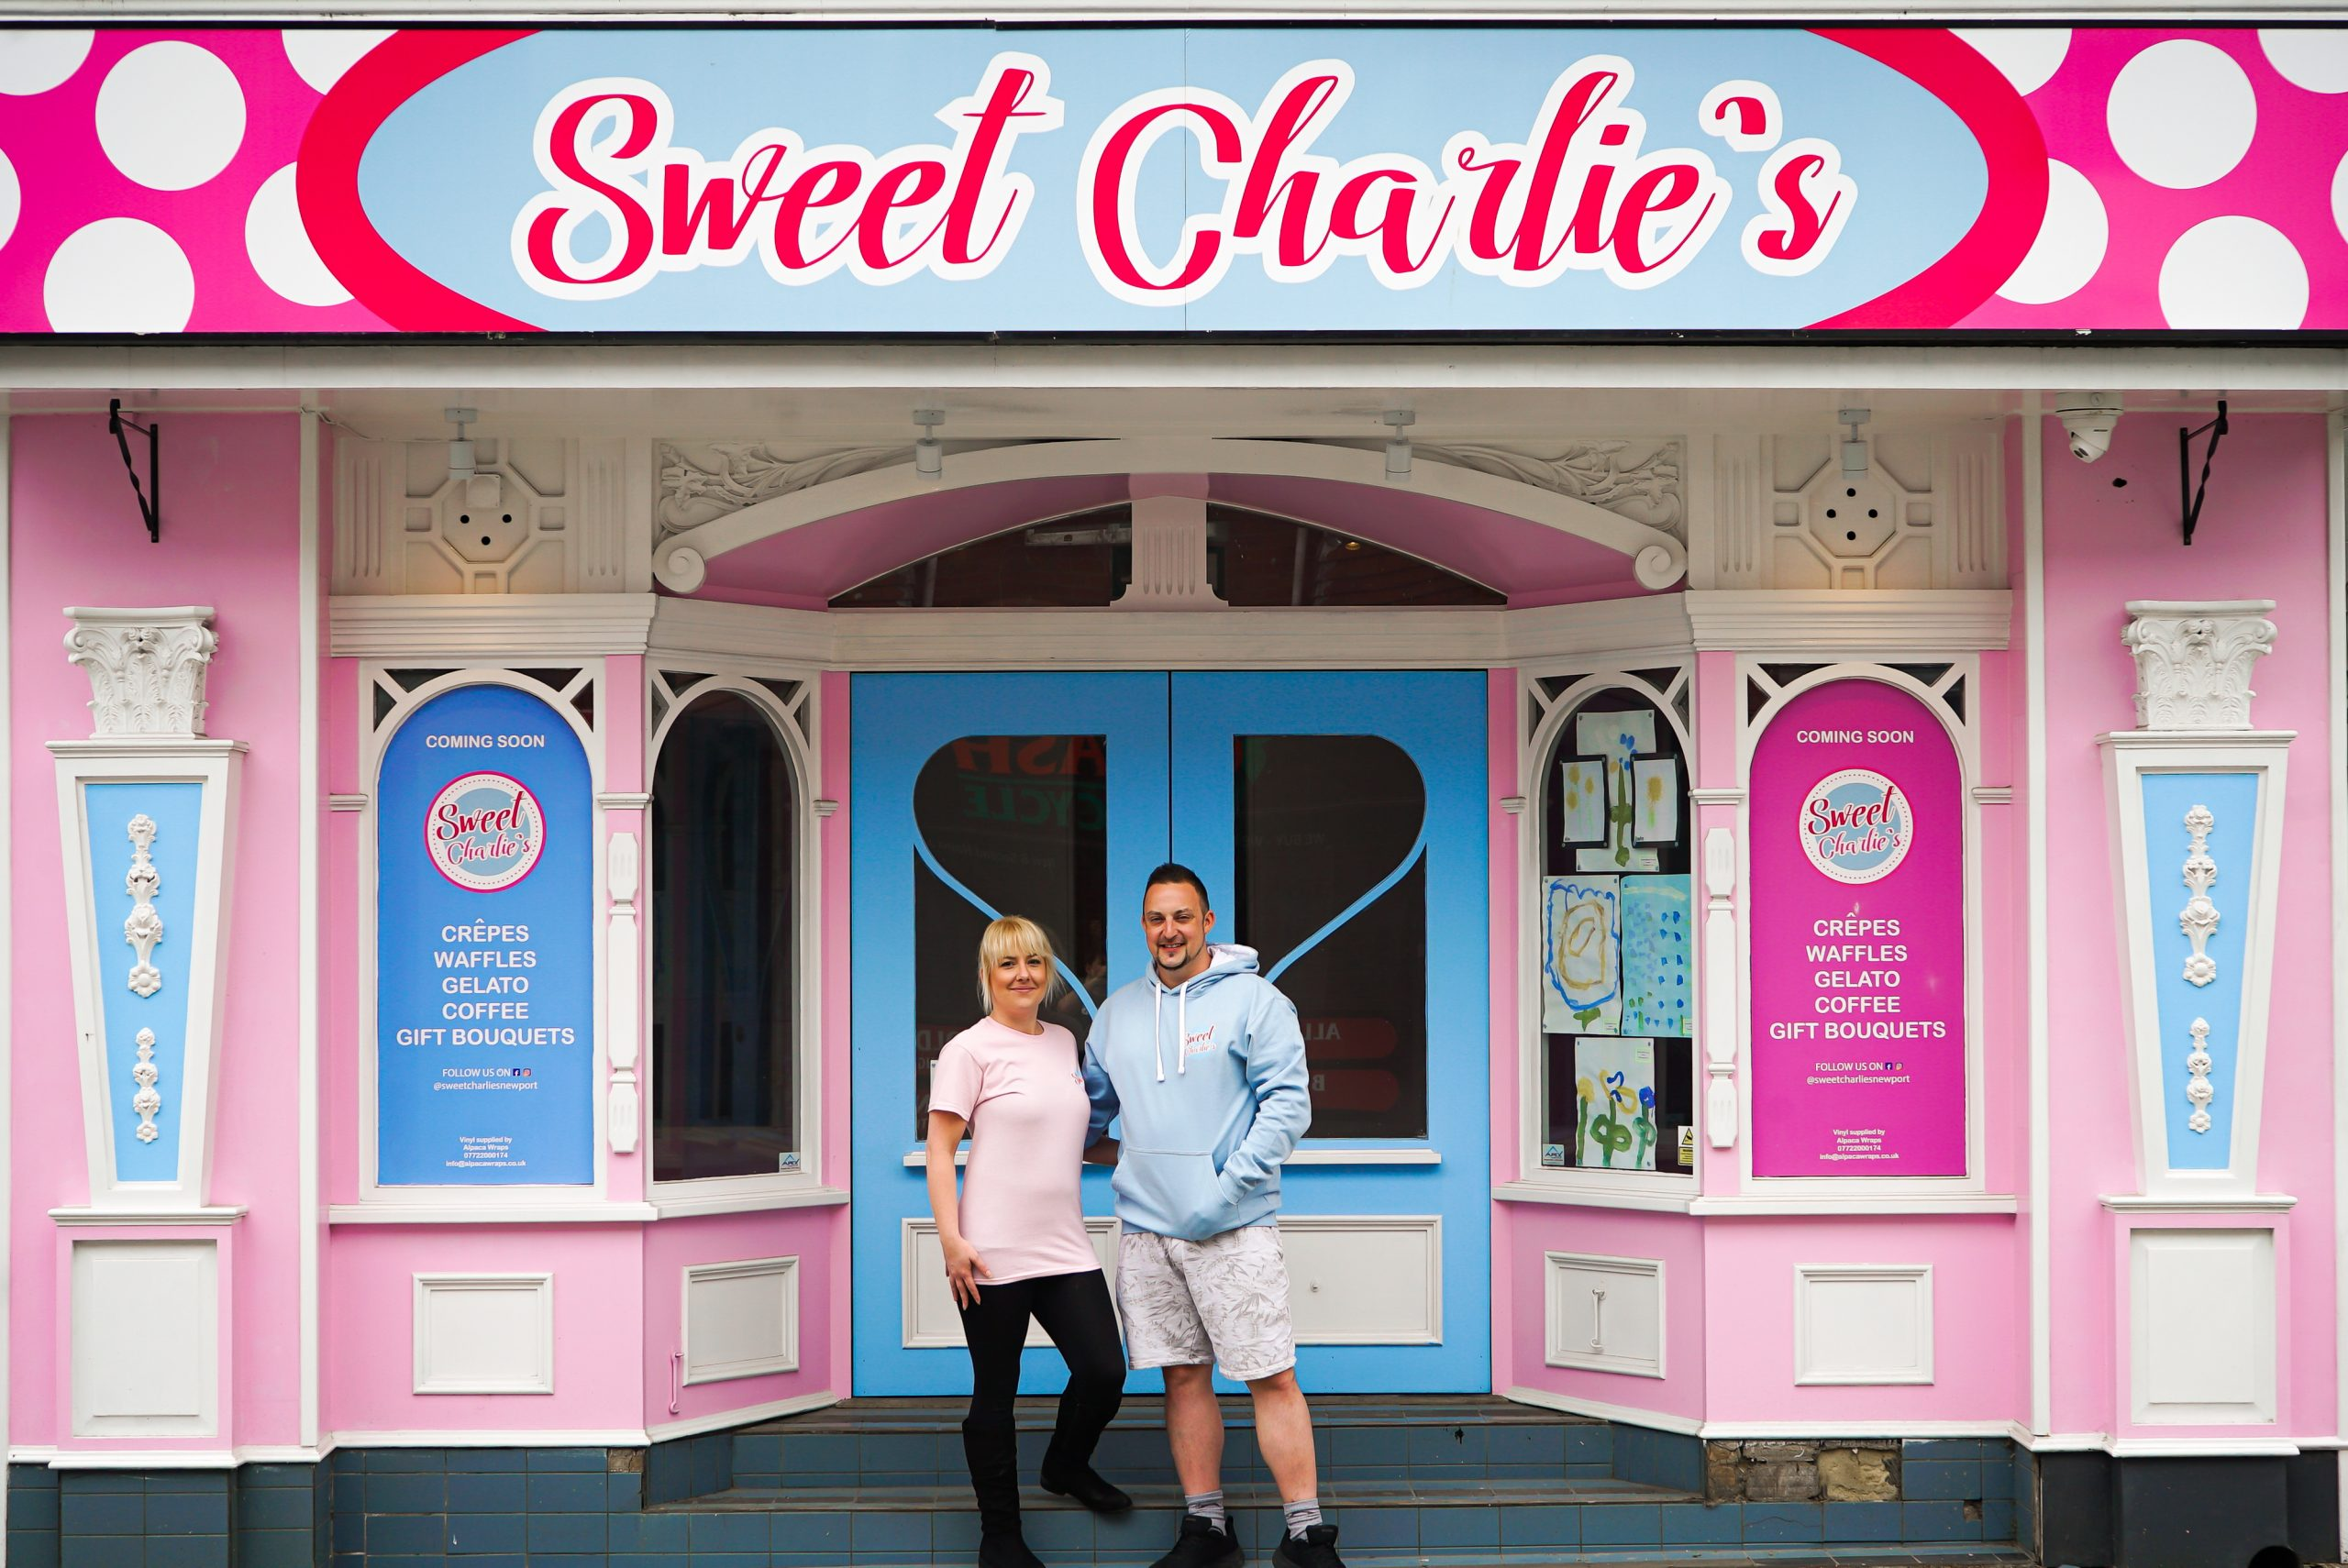 Charlie and Dave at the Sweet Charlie's Shopfront